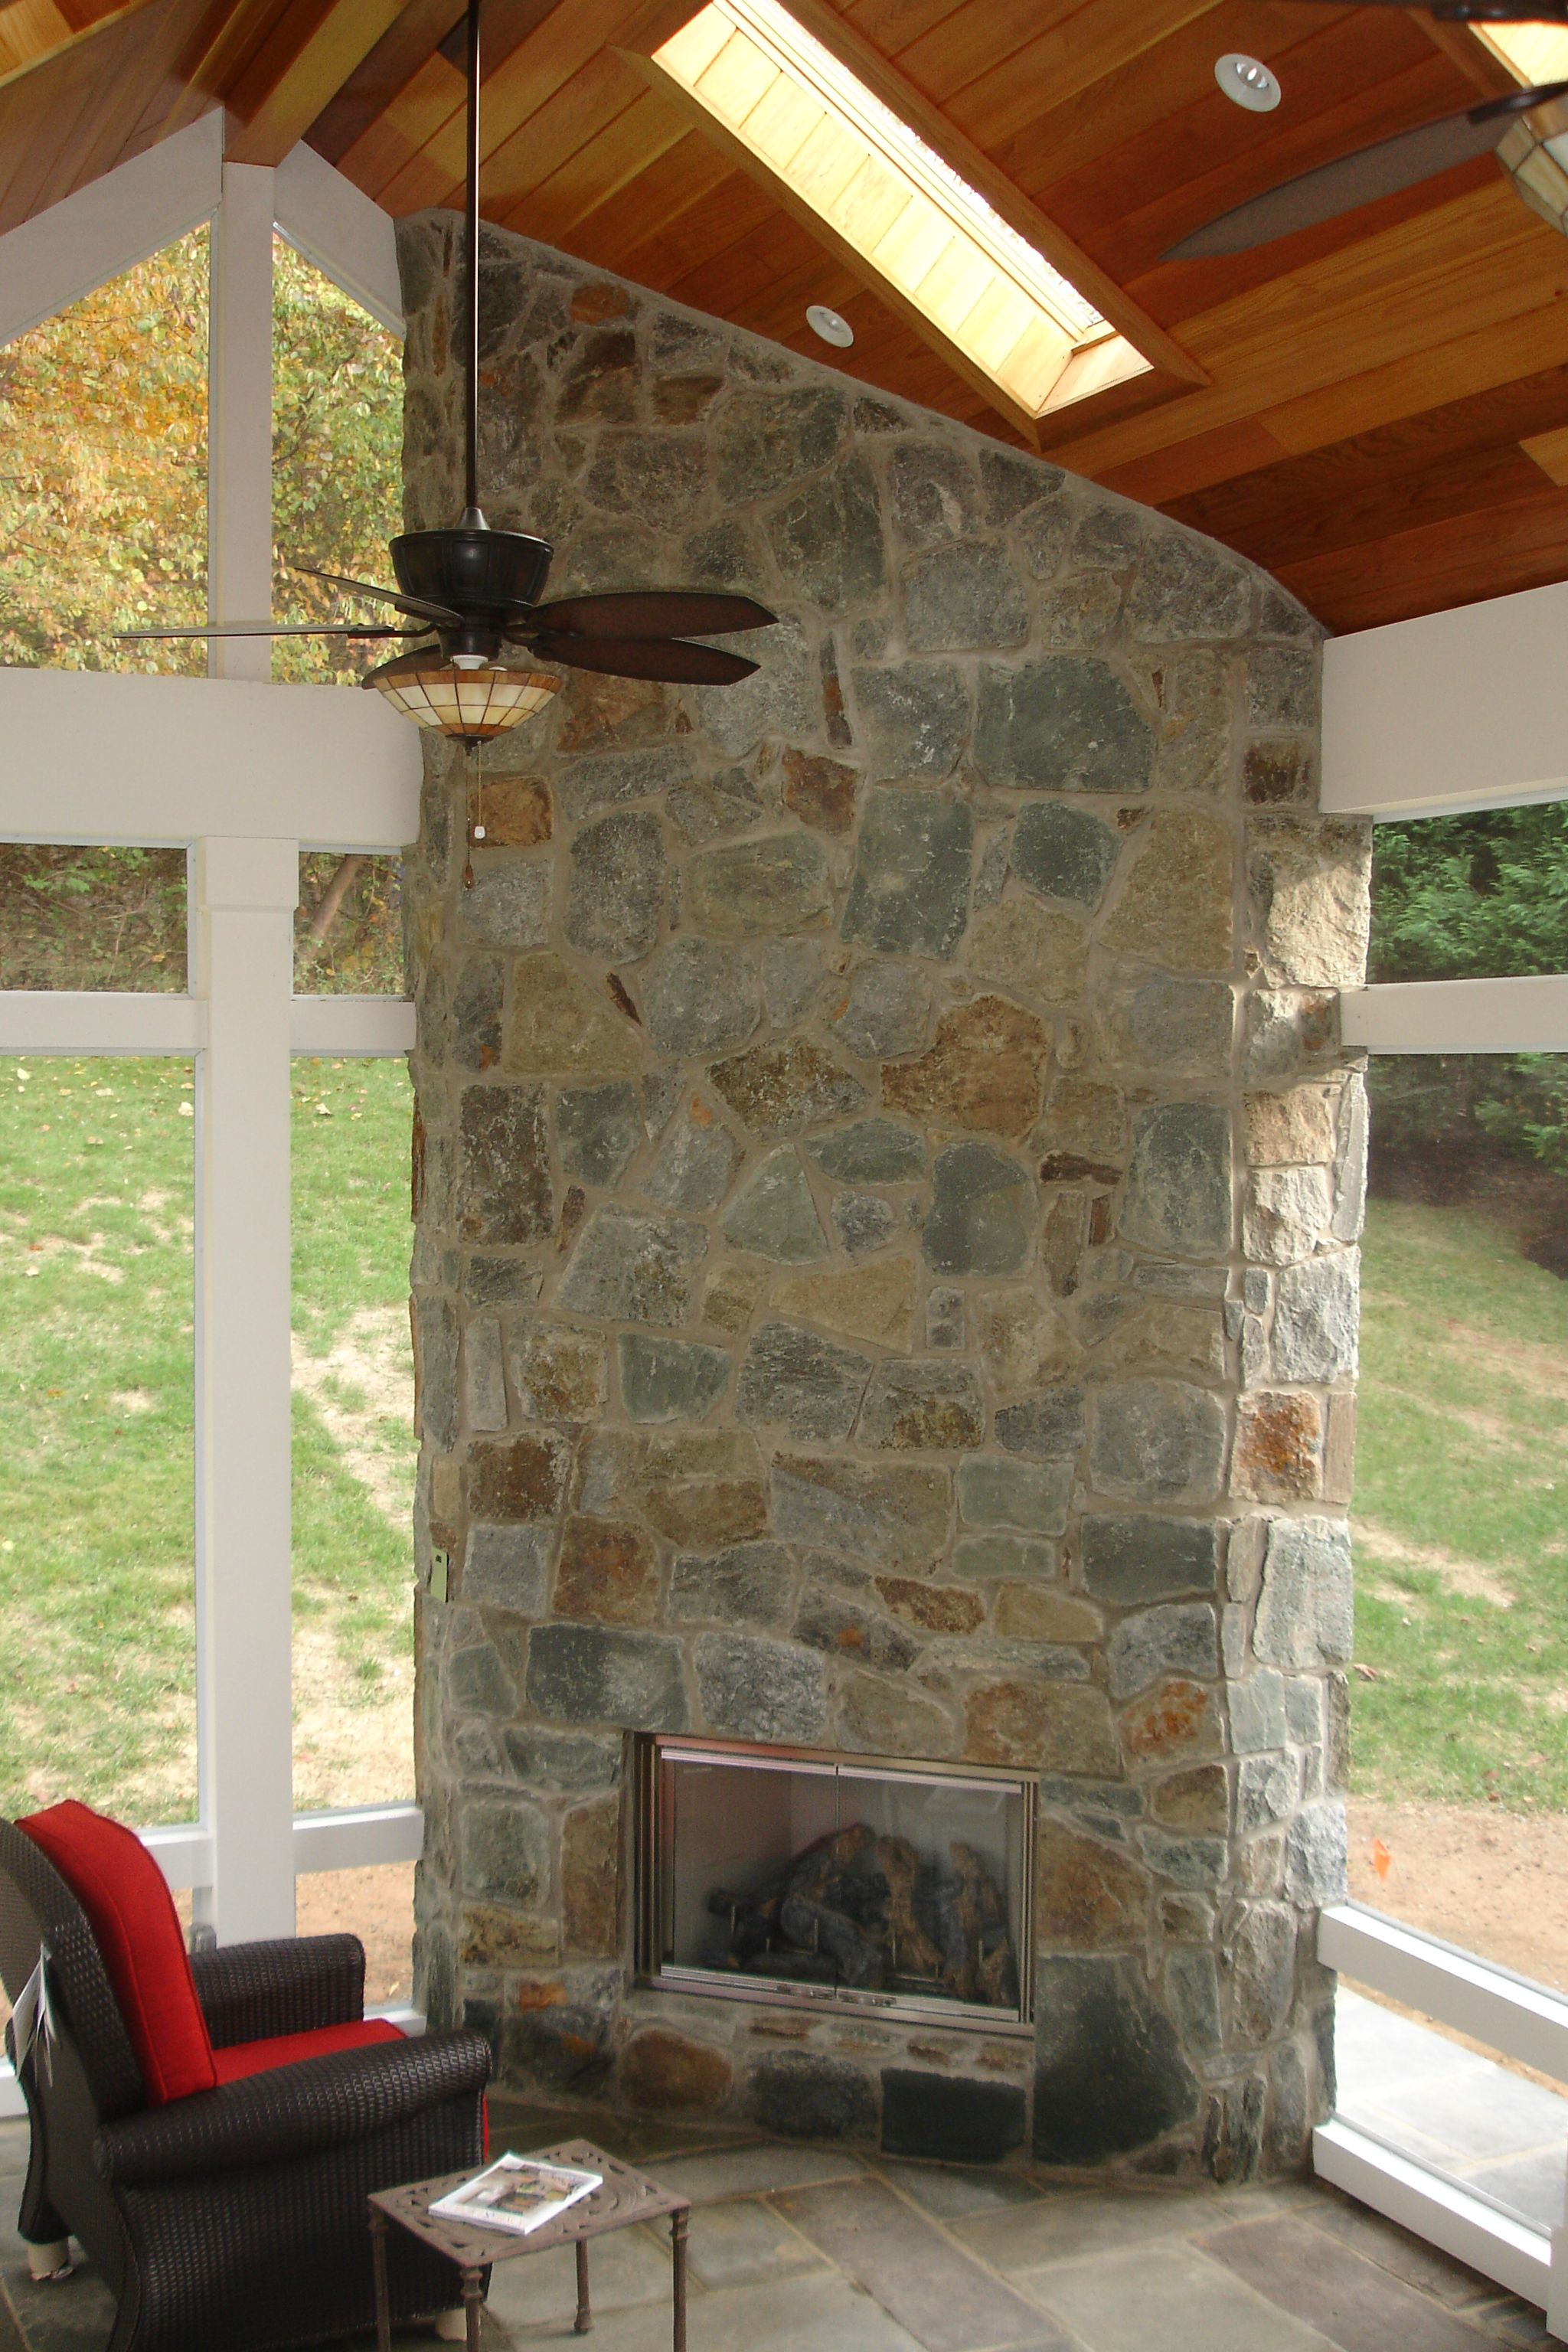 How Much Does It Cost To Build A Fireplace In A Screened In Porch Build A Fireplace Building A Deck Outdoor Living Deck